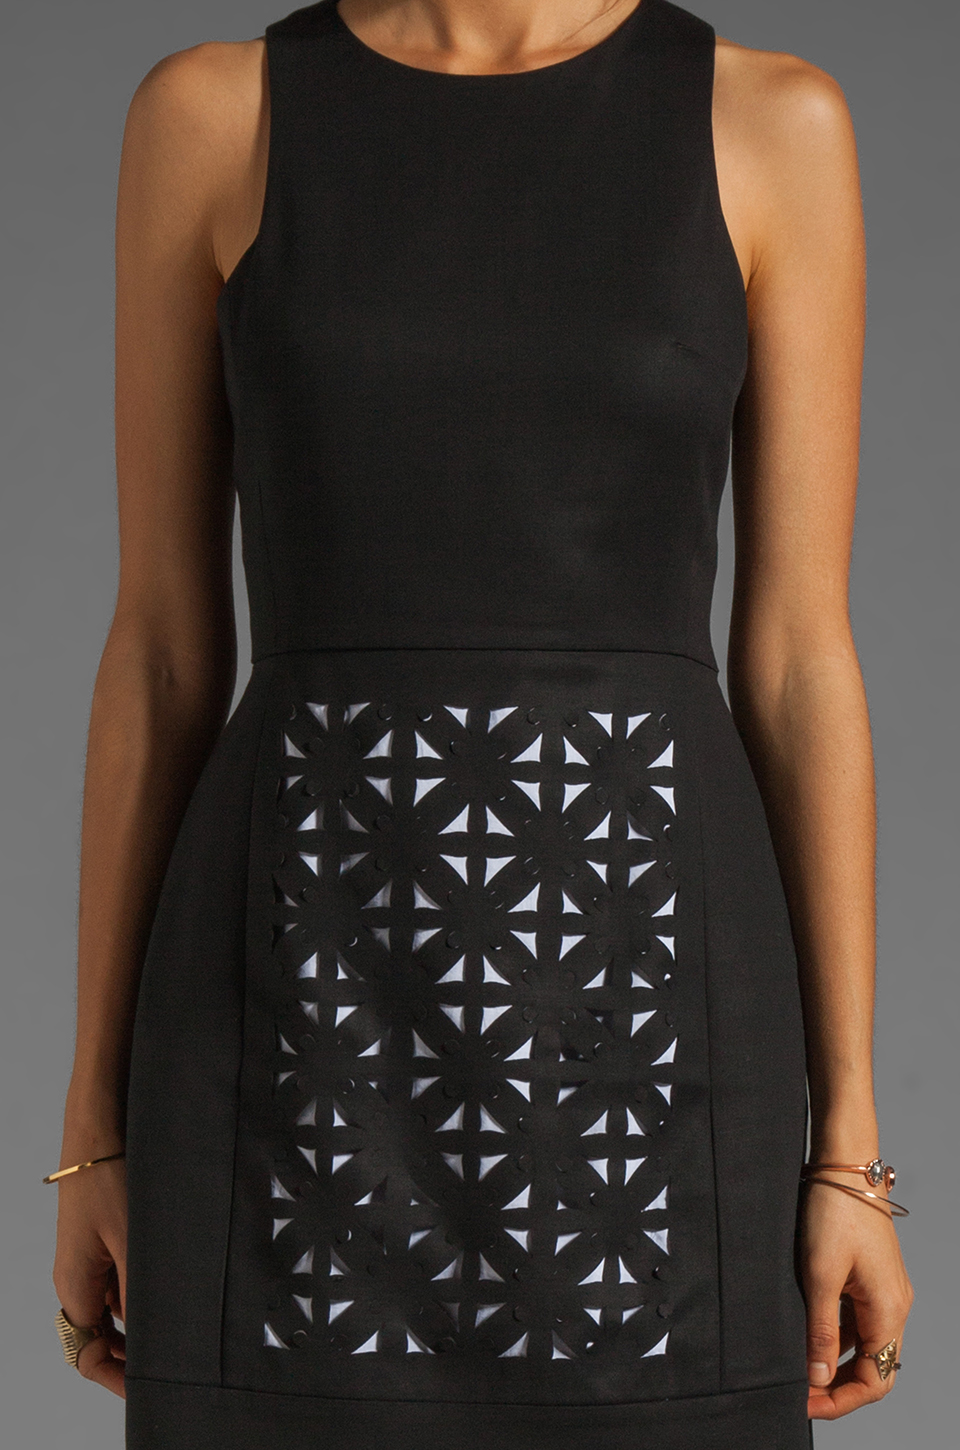 Tibi Pai Cut Out Sleeveless Dress in Black